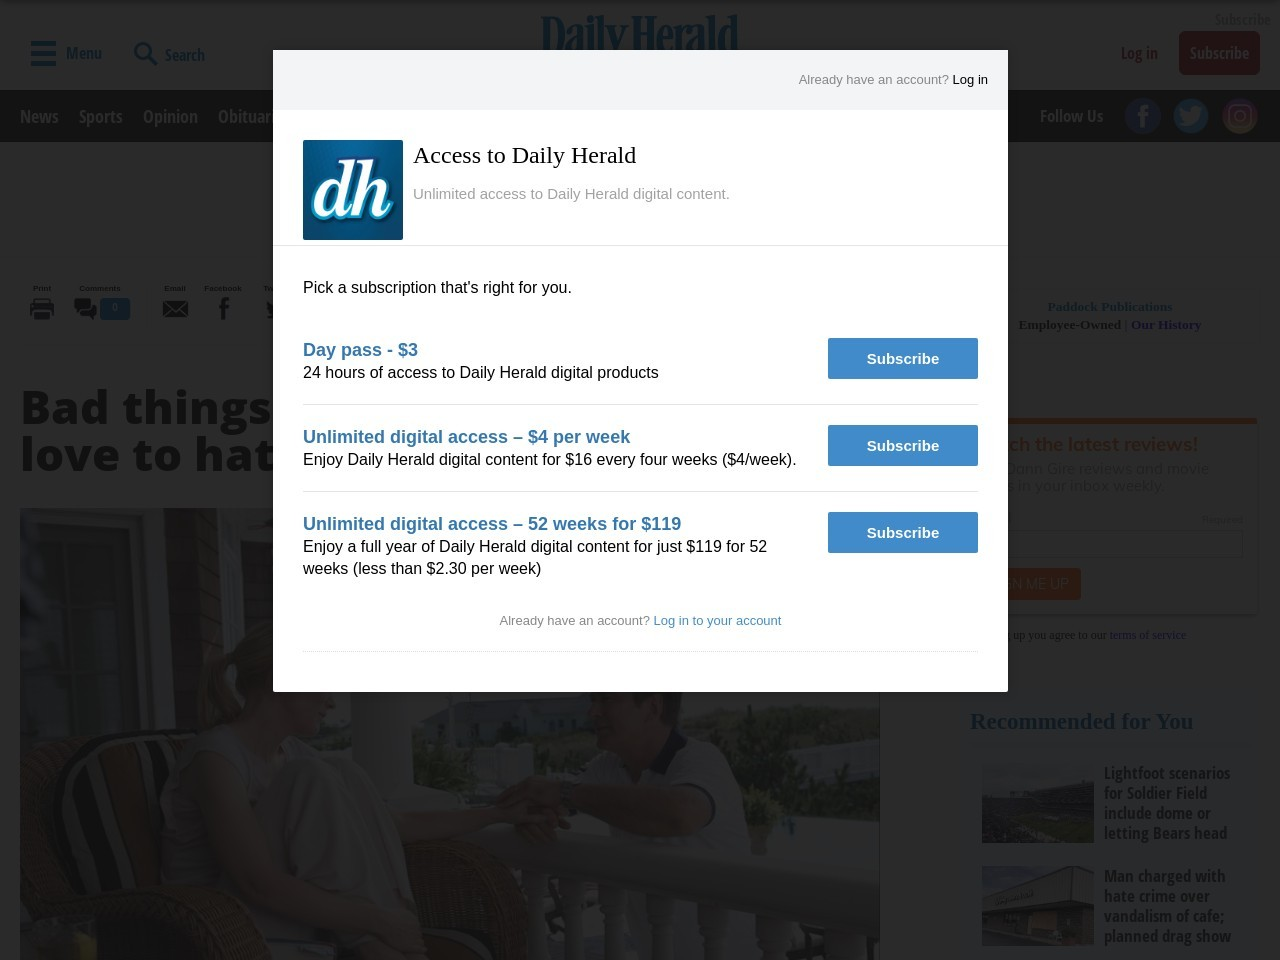 Bad things happen to characters we love to hate in 'Blue Jasmine'